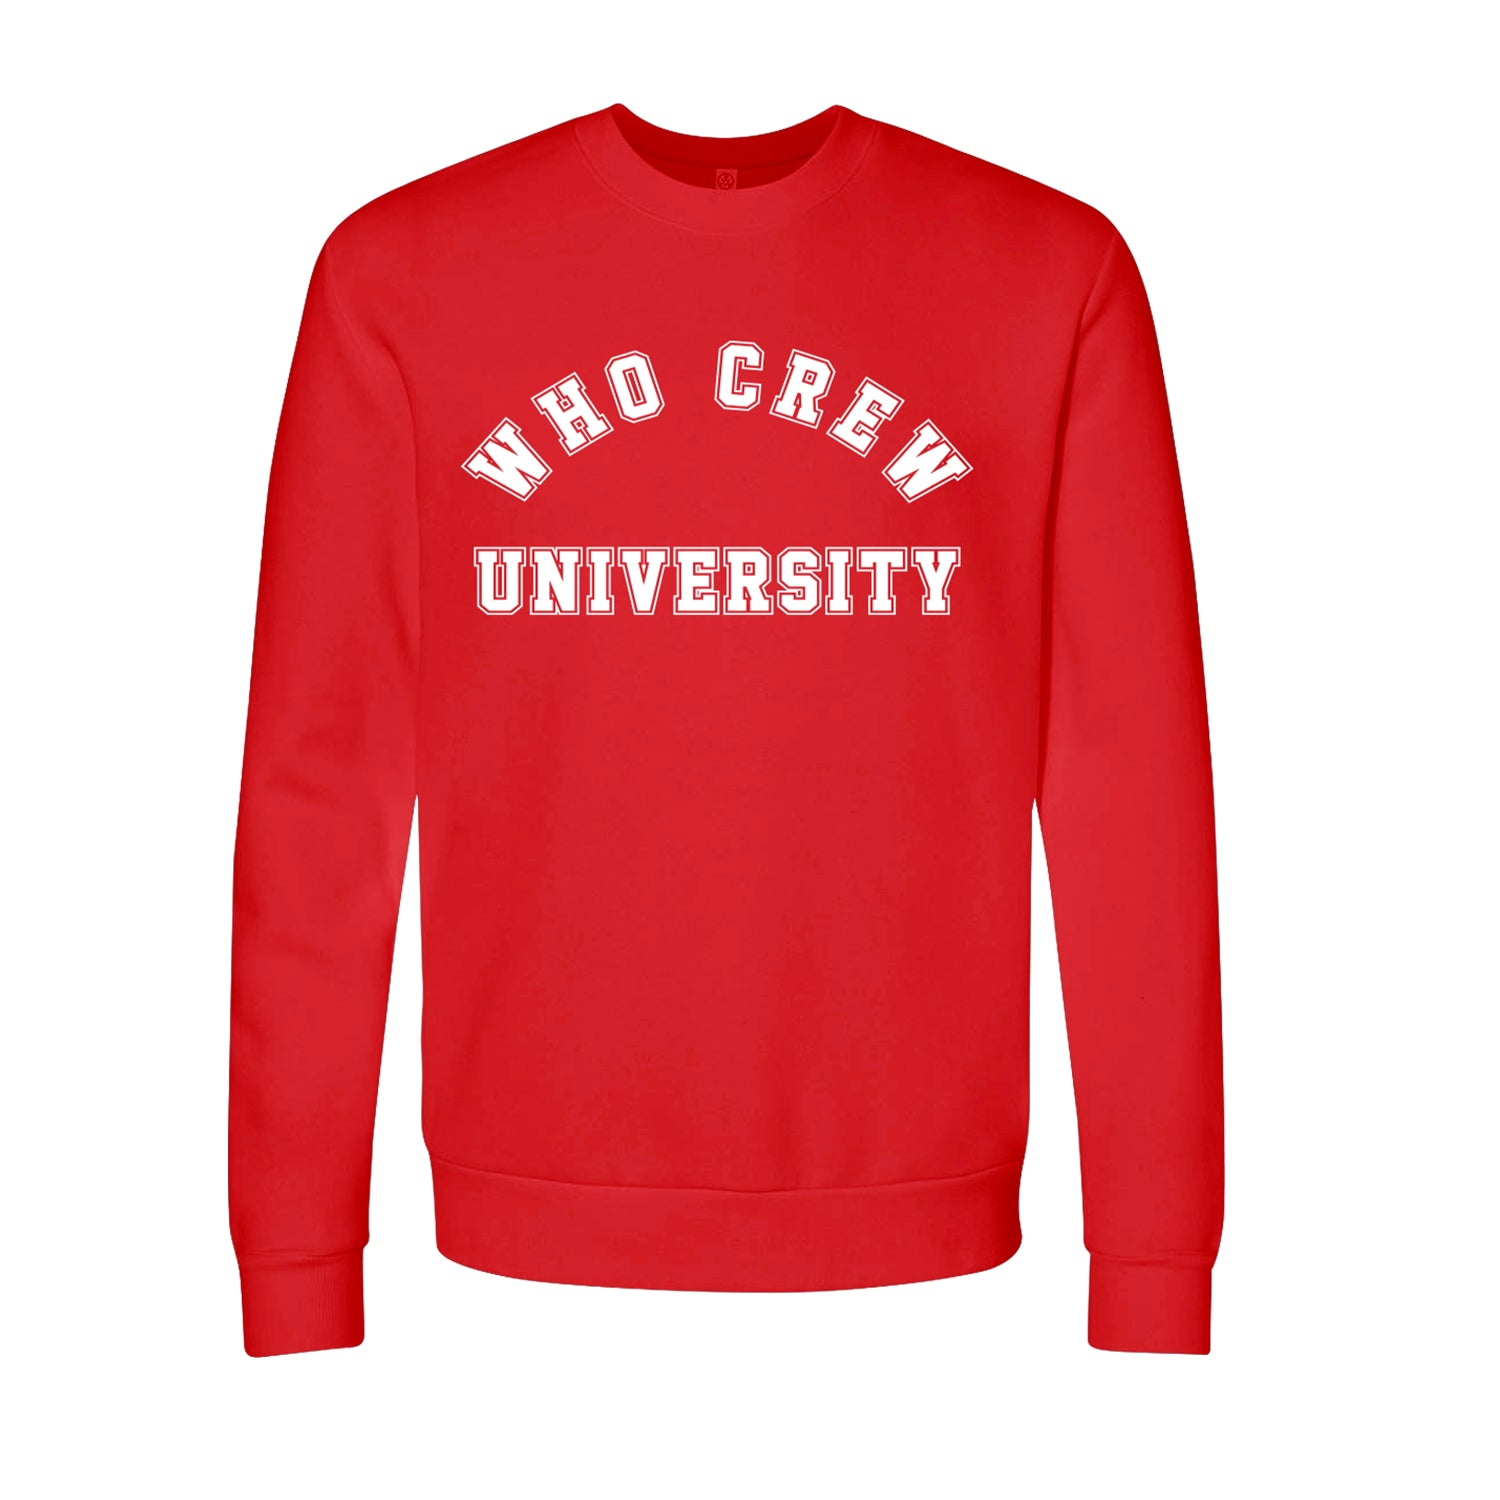 Who Crew University Crewneck (Limited Run)